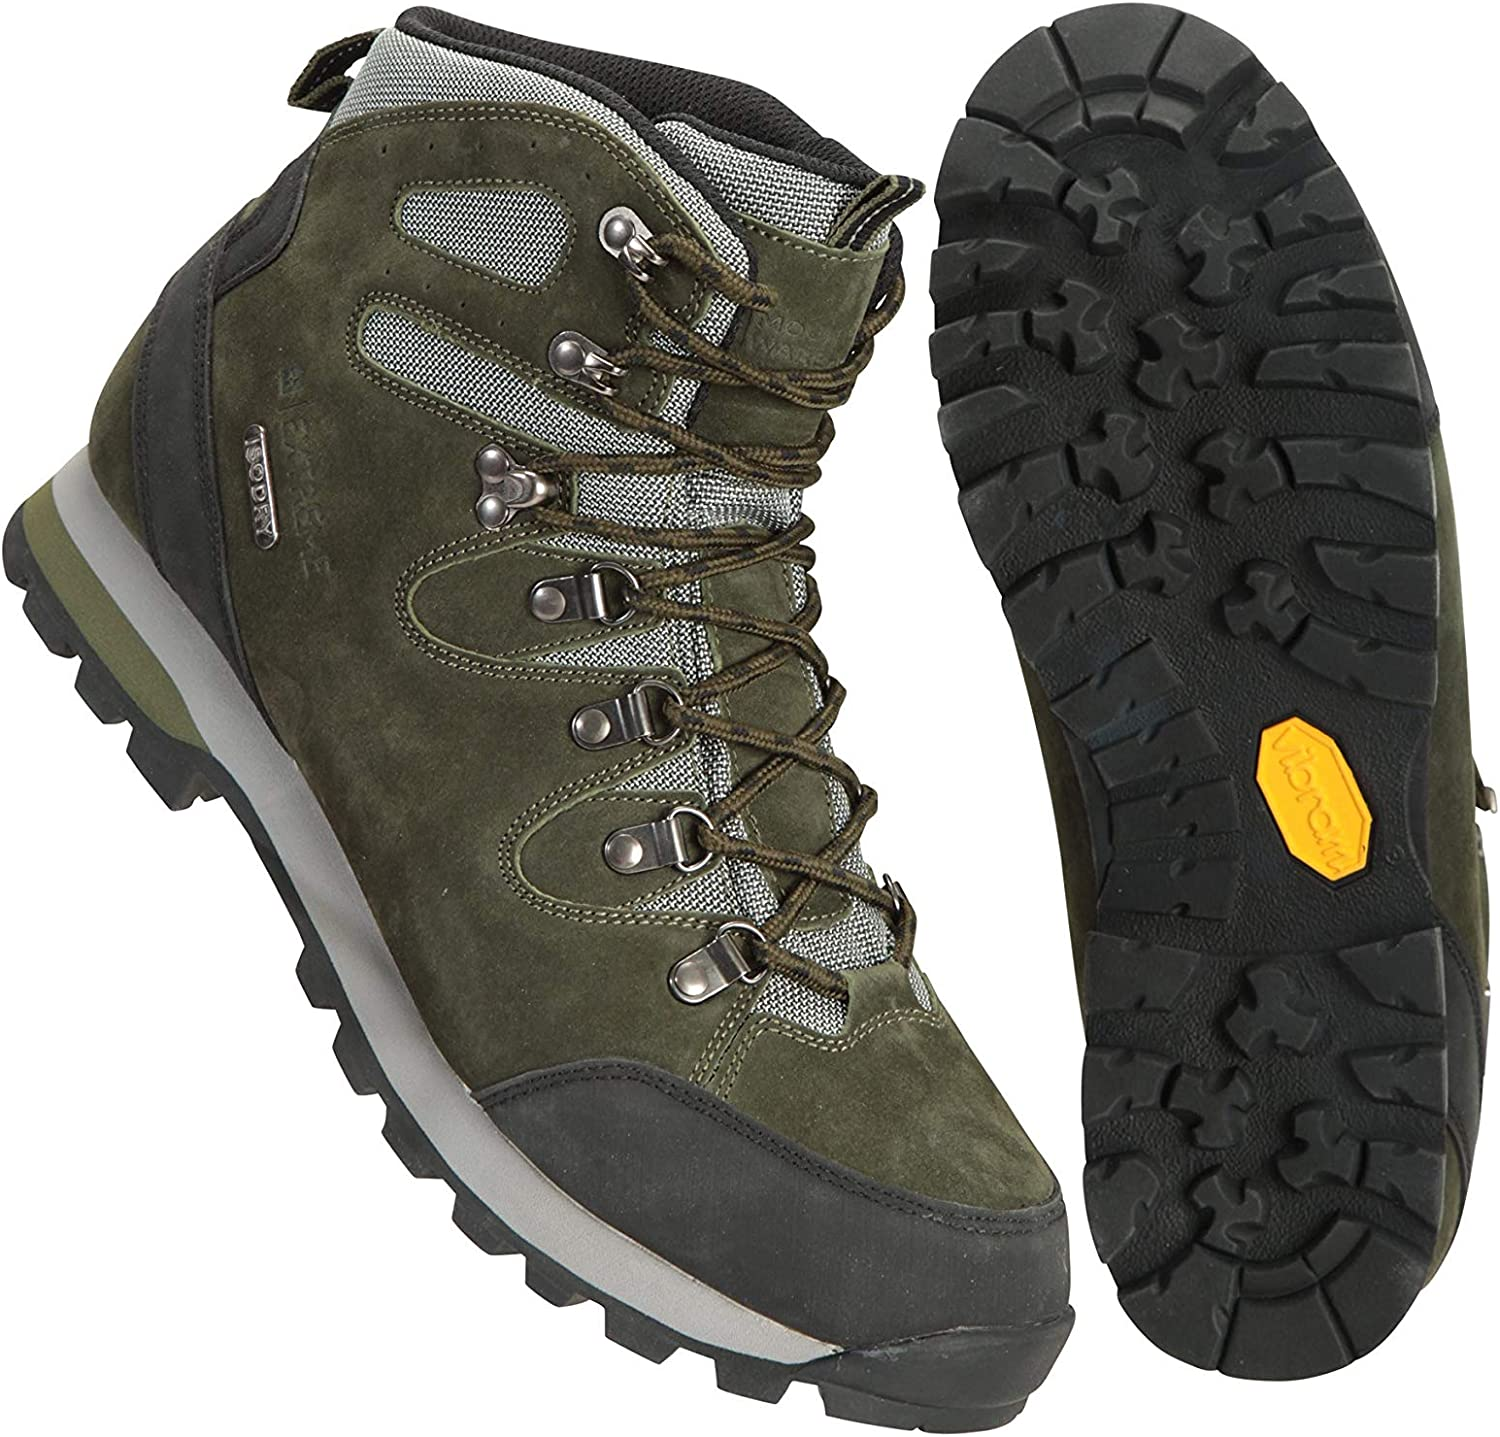 Camping EVA Footbed Footwear for Hiking Suede Mesh Upper Walking Shoes Grippy Outsole Mountain Warehouse Highline II Mens Shoes